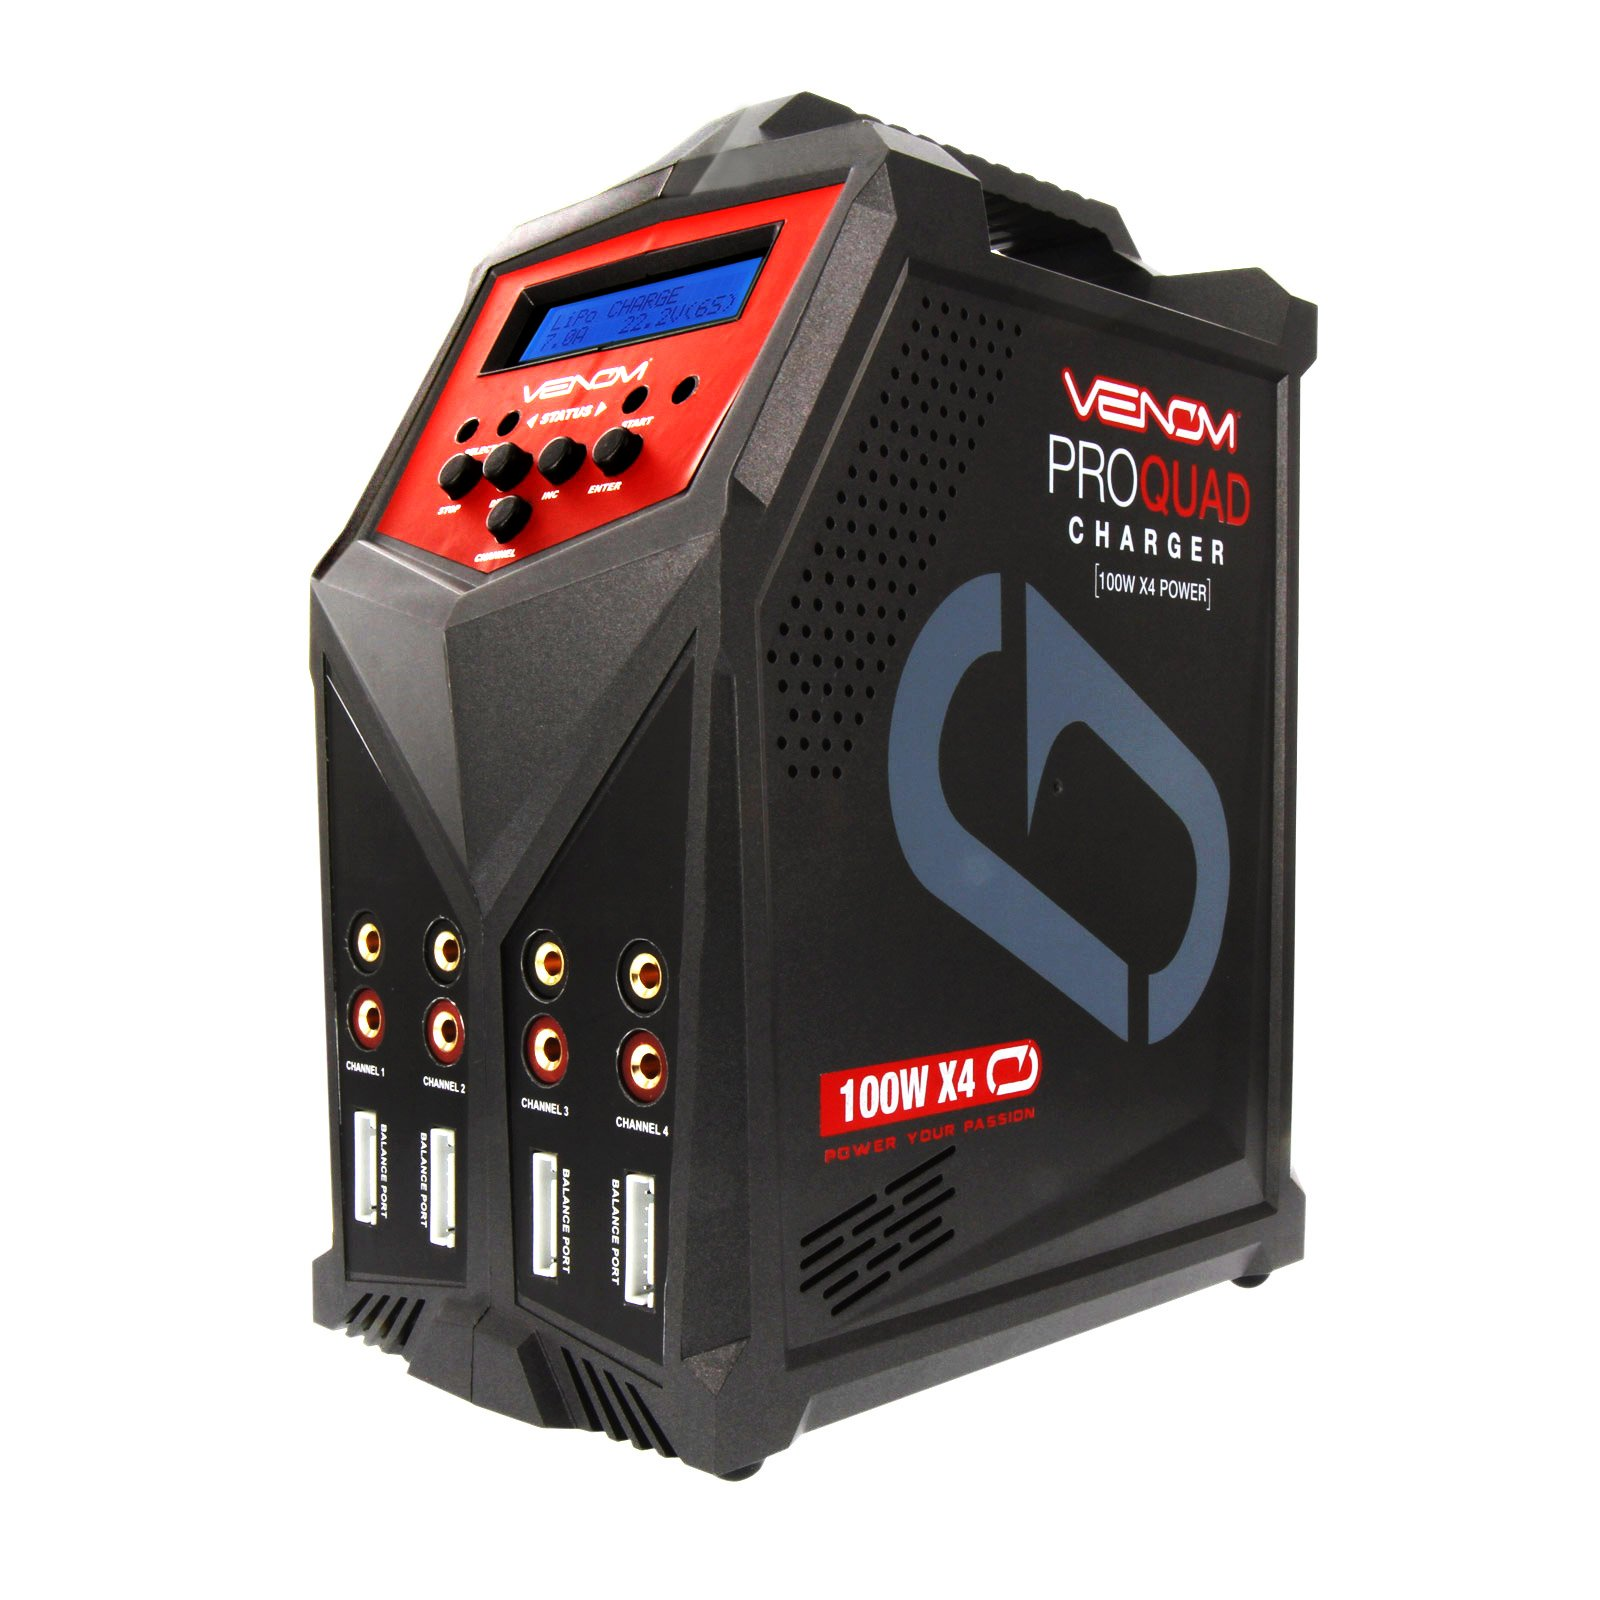 Venom Pro Quad 400 Watt (100W x 4) 7 Amp 4-Port AC/DC Multi-Chemistry LiPo, LiHV, NiMH Battery Balance Charger with Two 5V 2.3A USB Outputs with XT60, Deans, HXT, Tamiya, EC3, JST